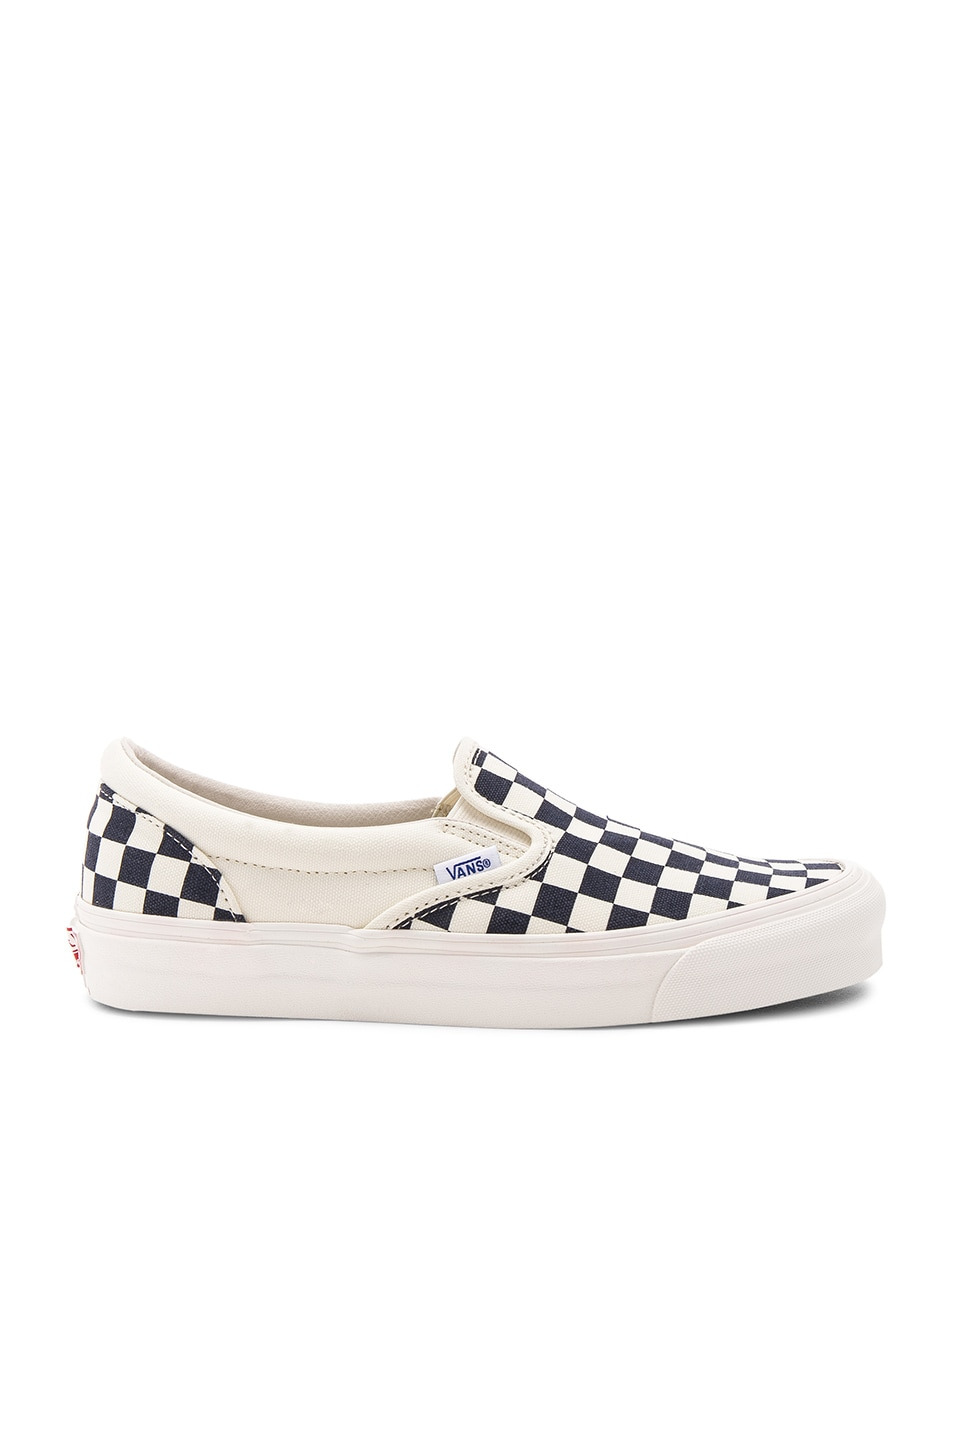 d0928a4cff9f Image 1 of Vans Vault OG Classic Canvas Checkerboard Slip On LX in White    Navy